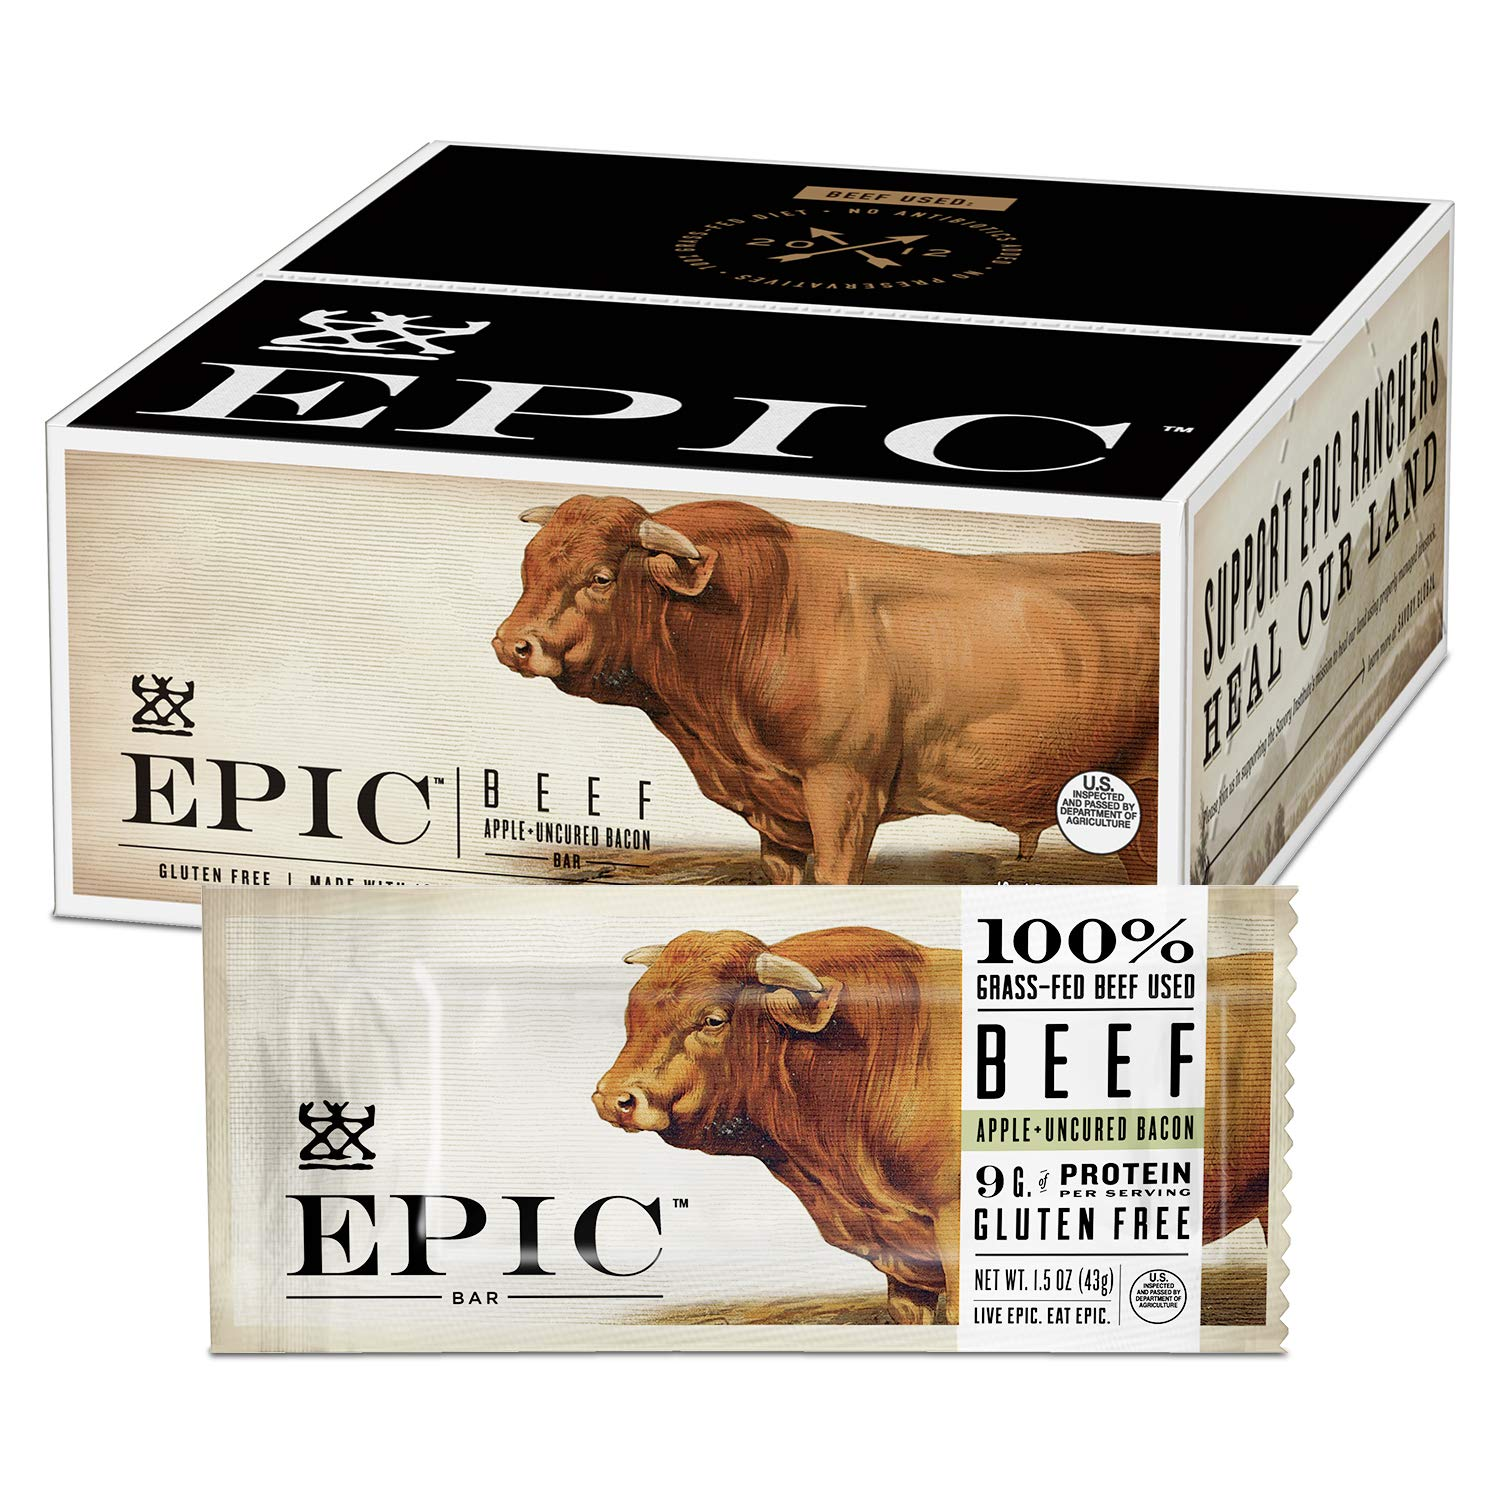 EPIC Beef Apple Bacon Bars, Grass-Fed, Whole30, 12 Count Box 1.5oz bars